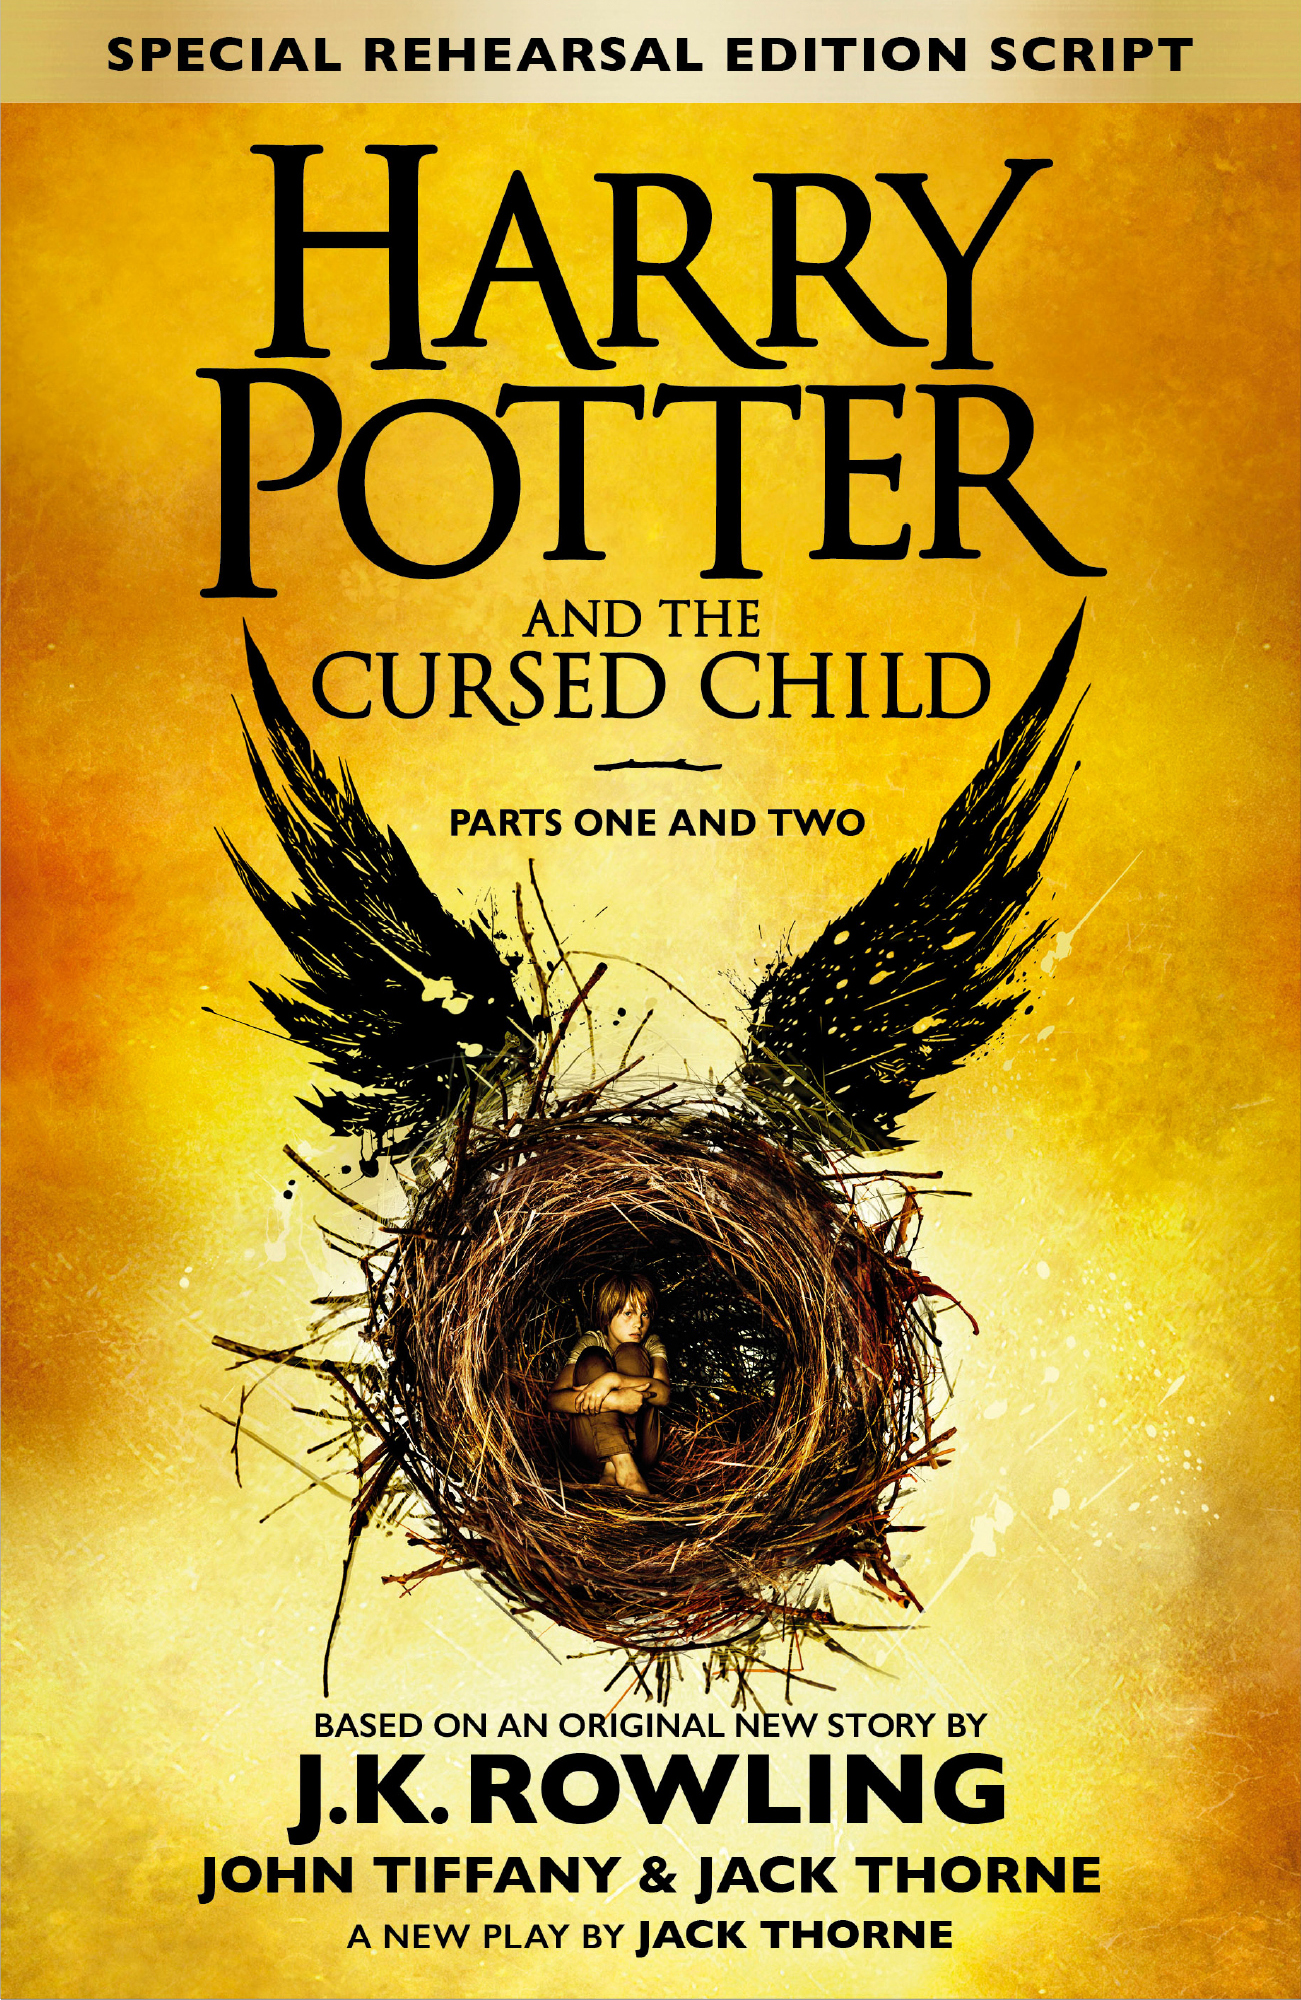 Harry potter and the cursed child – parts one and two (special rehearsal edition) : The Official Script Book of the Original West End Production